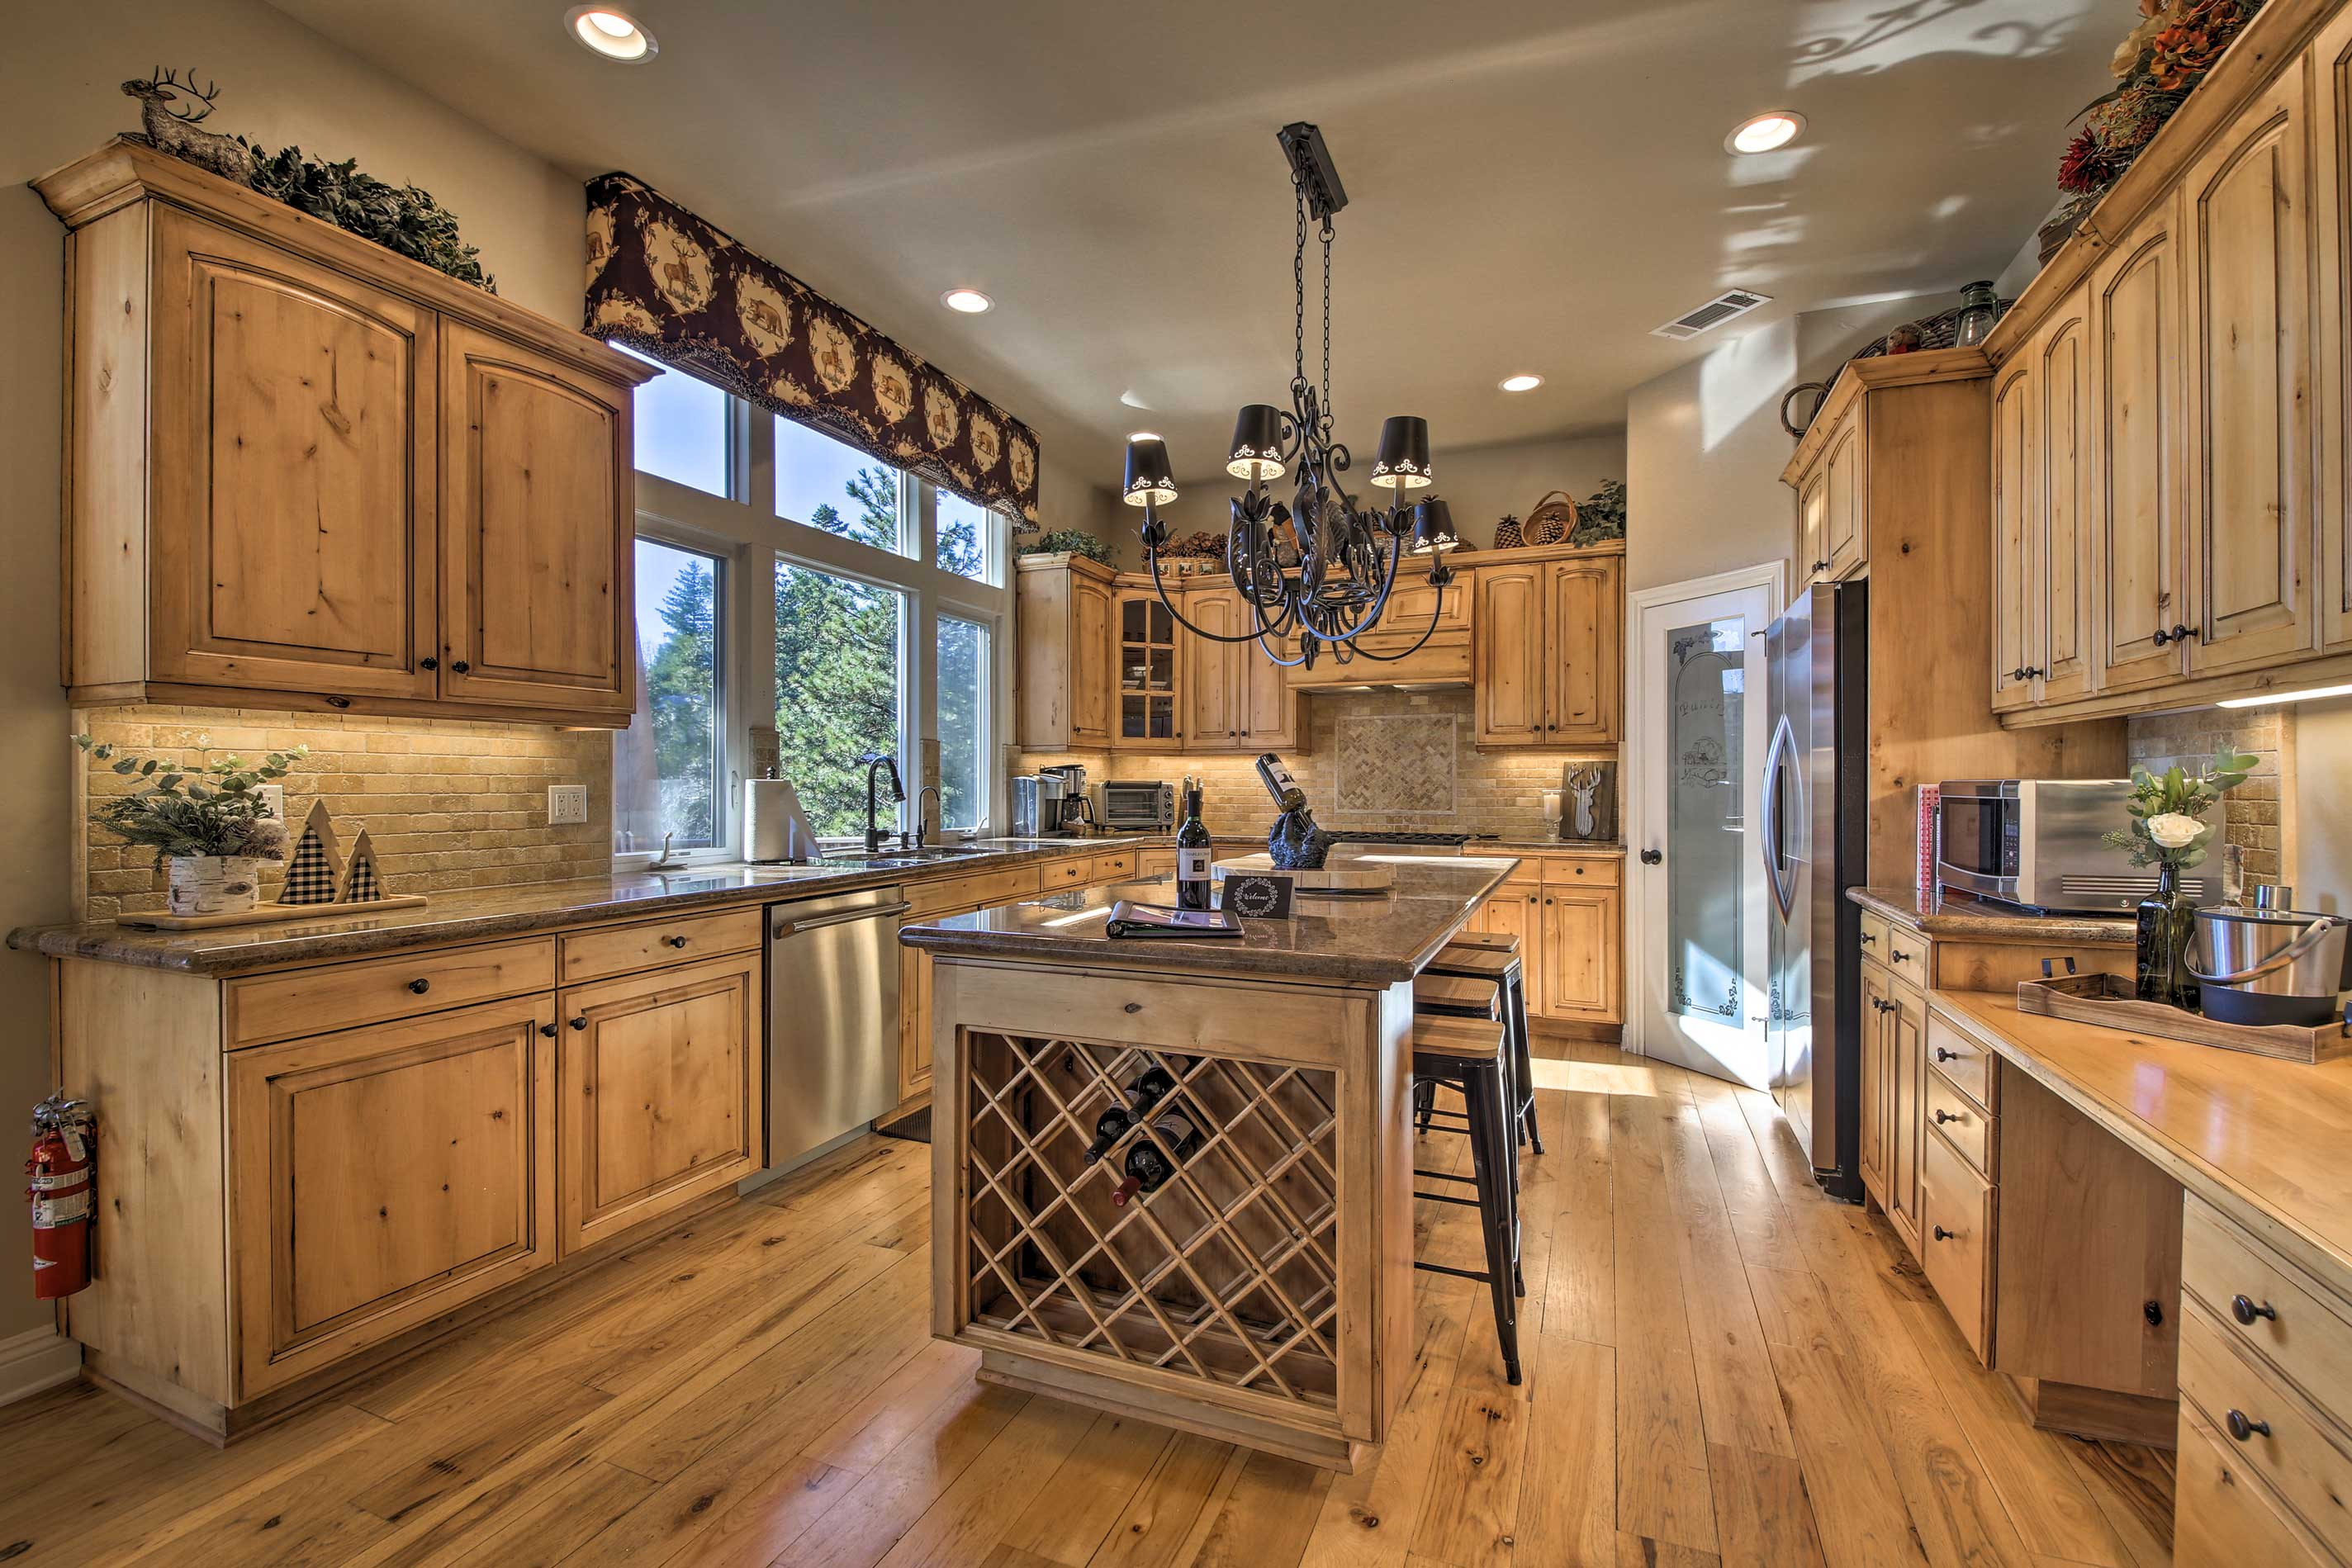 You'll have ample space to show off your impressive culinary skills!